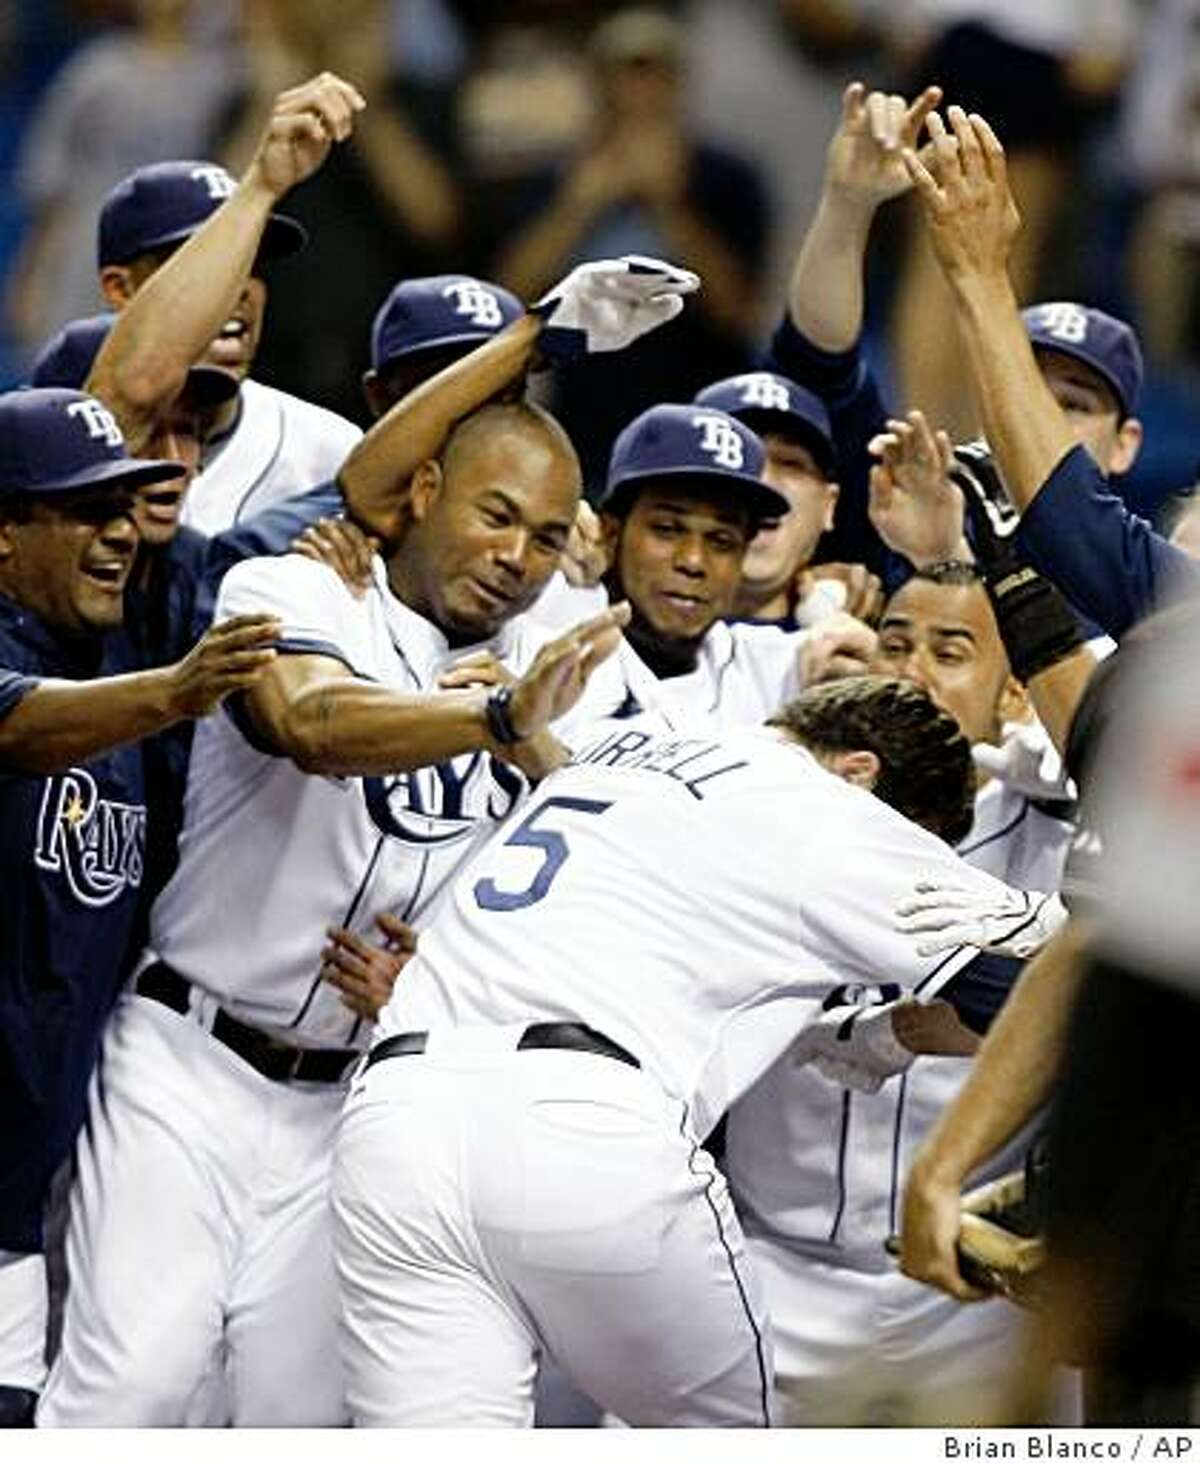 Tampa Bay Rays' Pat Burrell is surrounded by his teammates after hitting a two-run home run against the Toronto Blue Jays in the 11th inning of a baseball game Tuesday, July 7, 2009, in St. Petersburg, Fla. Tampa Bay won 3-1. (AP Photo/Brian Blanco)